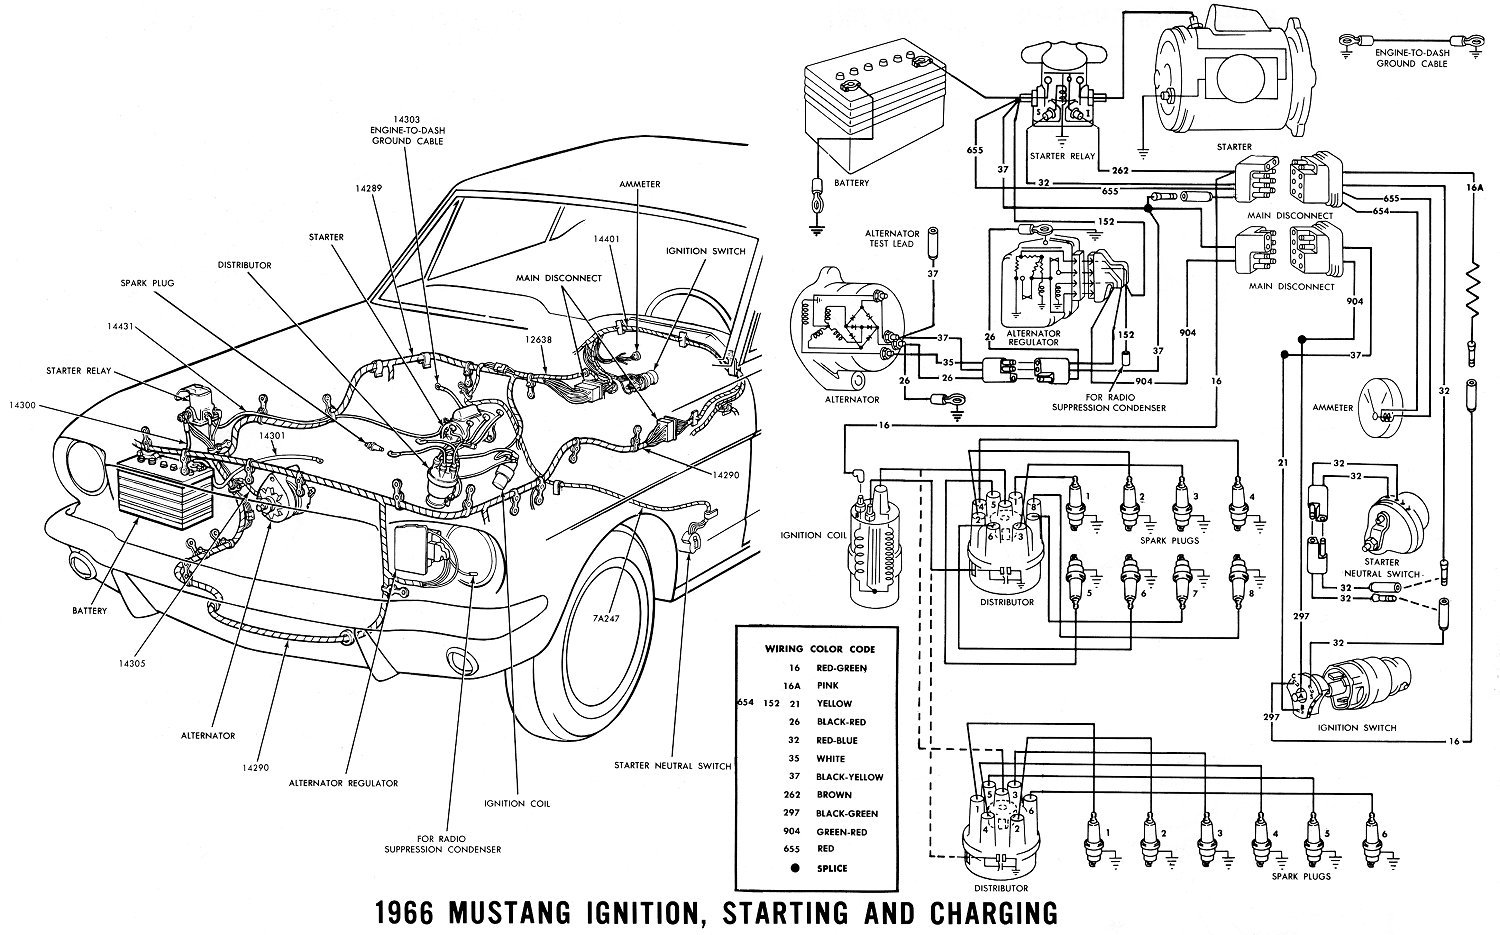 Untitled — Car Ignition Wiring Diagram